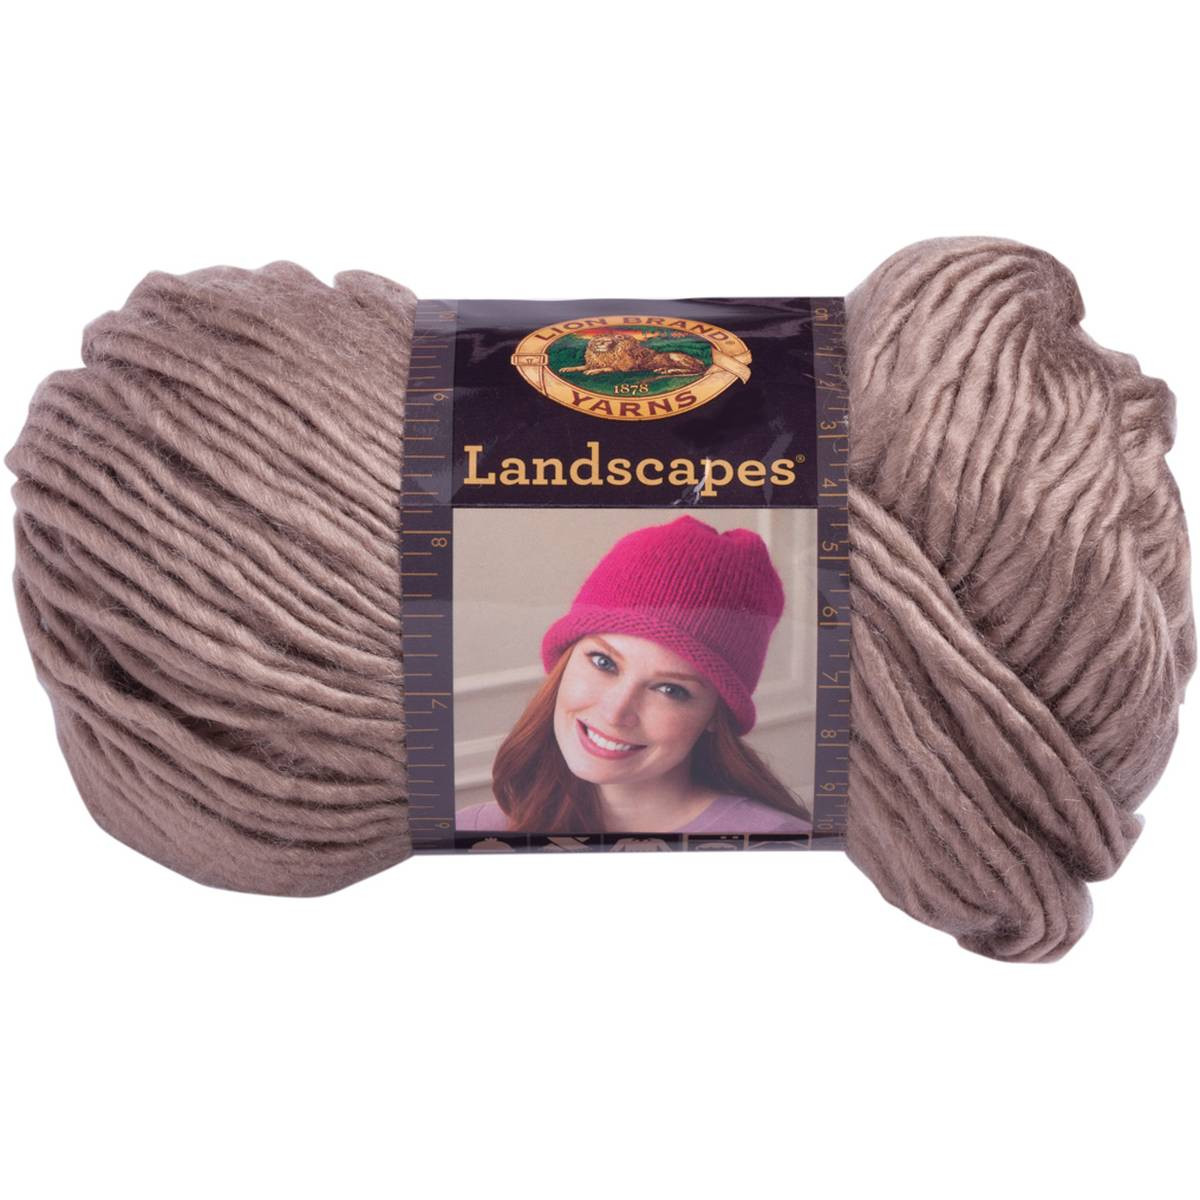 Lion Brand Landscapes Yarn Best Of Lion Brand Taupe Landscapes Aran Yarn 100 G Of Luxury 43 Images Lion Brand Landscapes Yarn